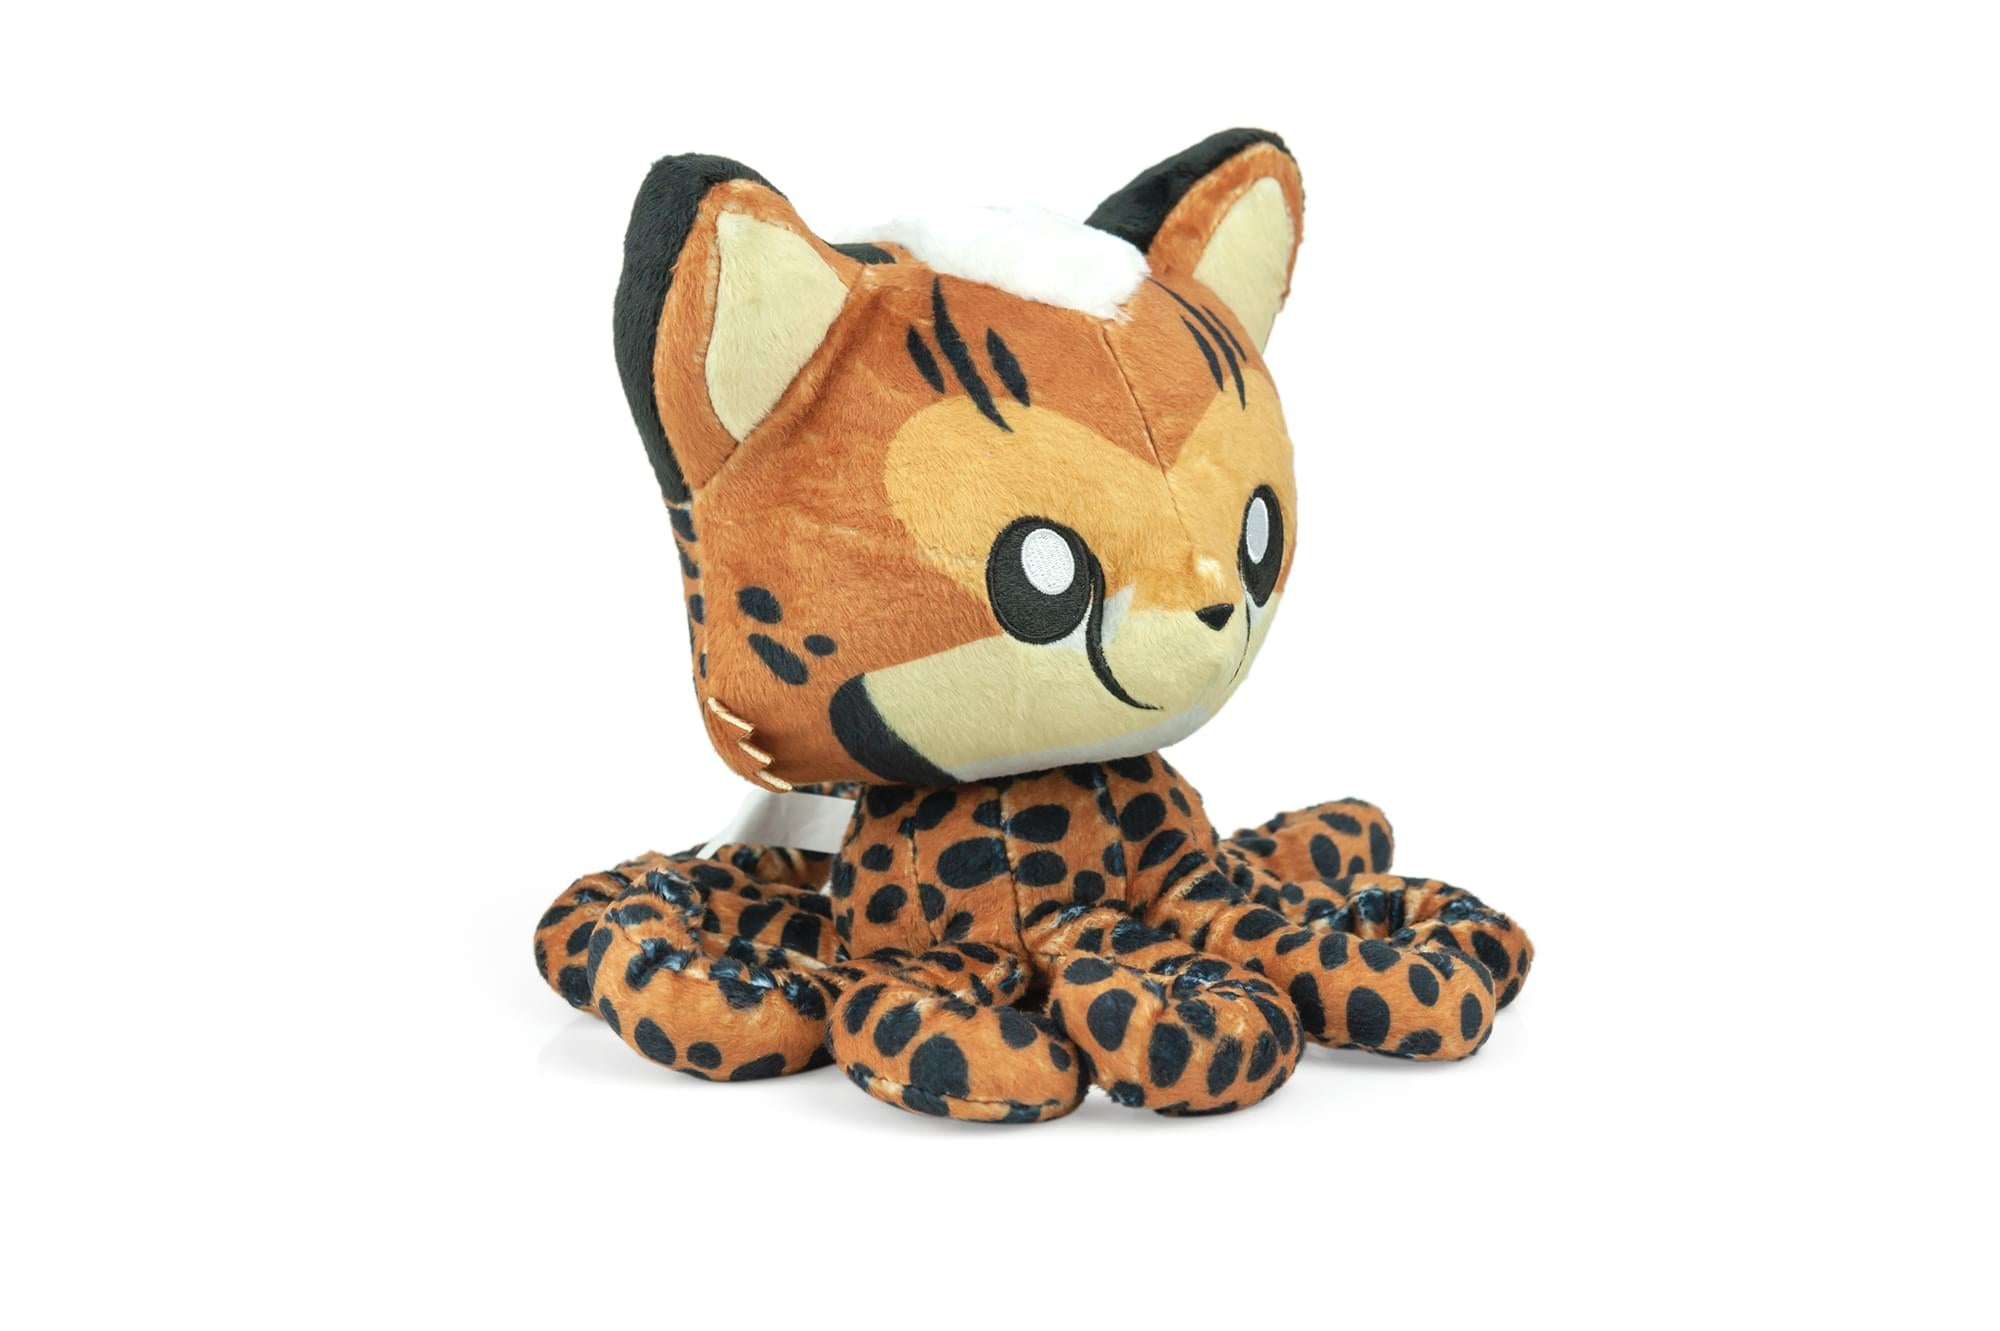 Tentacle Kitty Series Cheetah Kitty Plush Collectible | Measures 8 Inches Tall